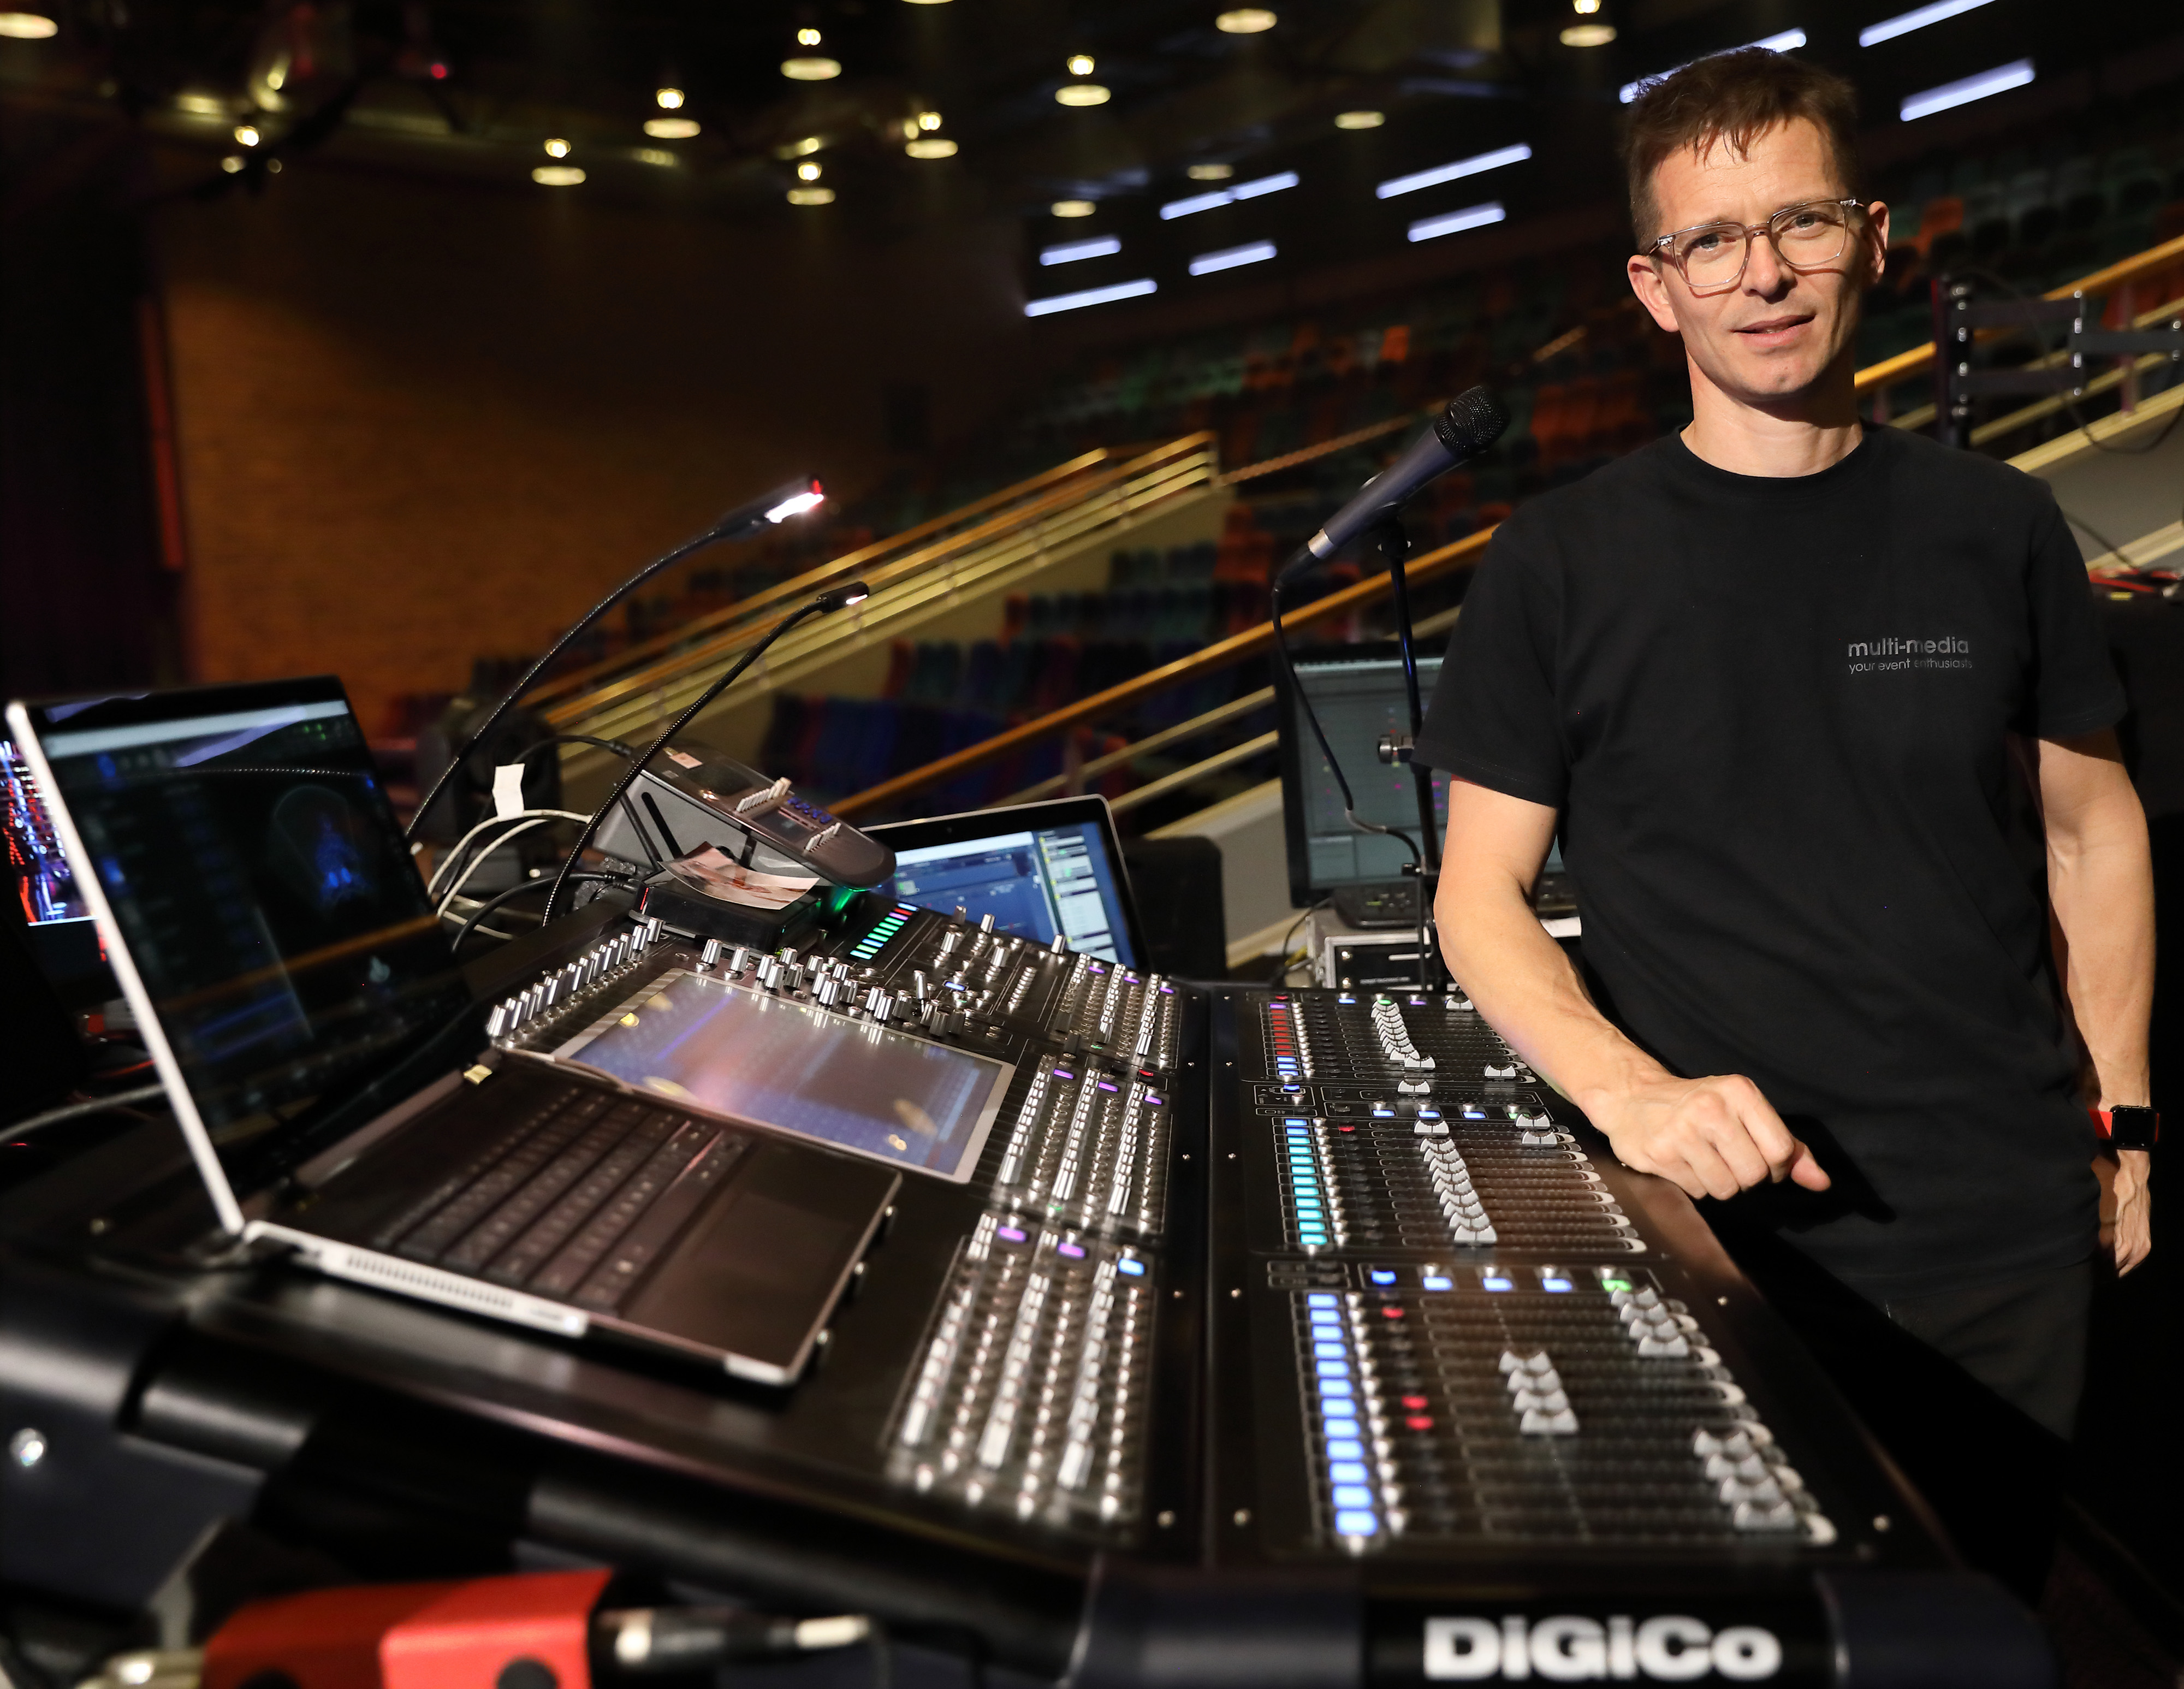 The Voice South Africa hears the future of sound with DiGiCo